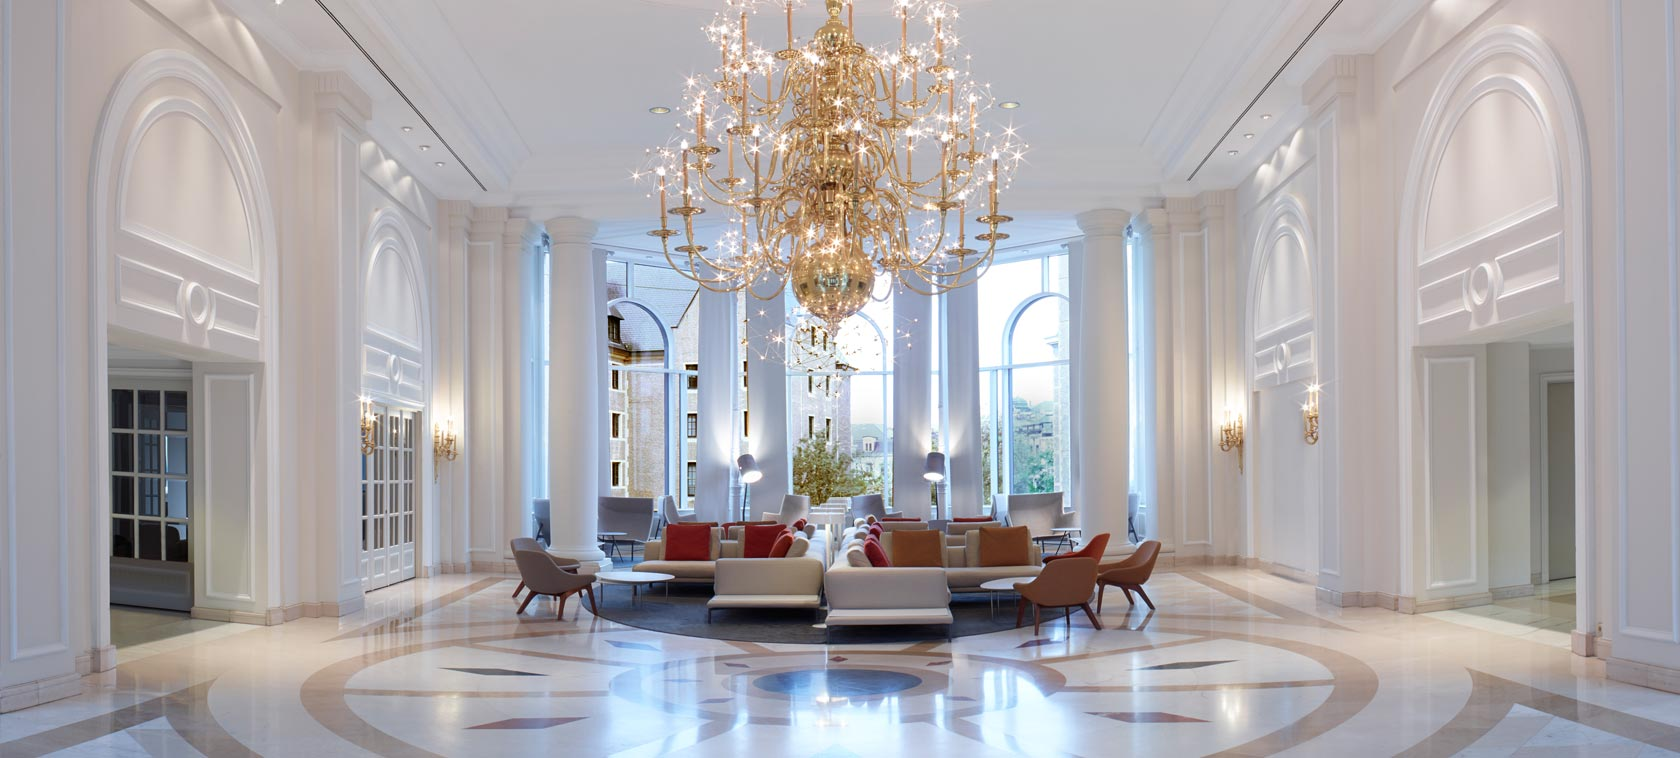 hilton-brussels-grand-place-lobby-1680×758